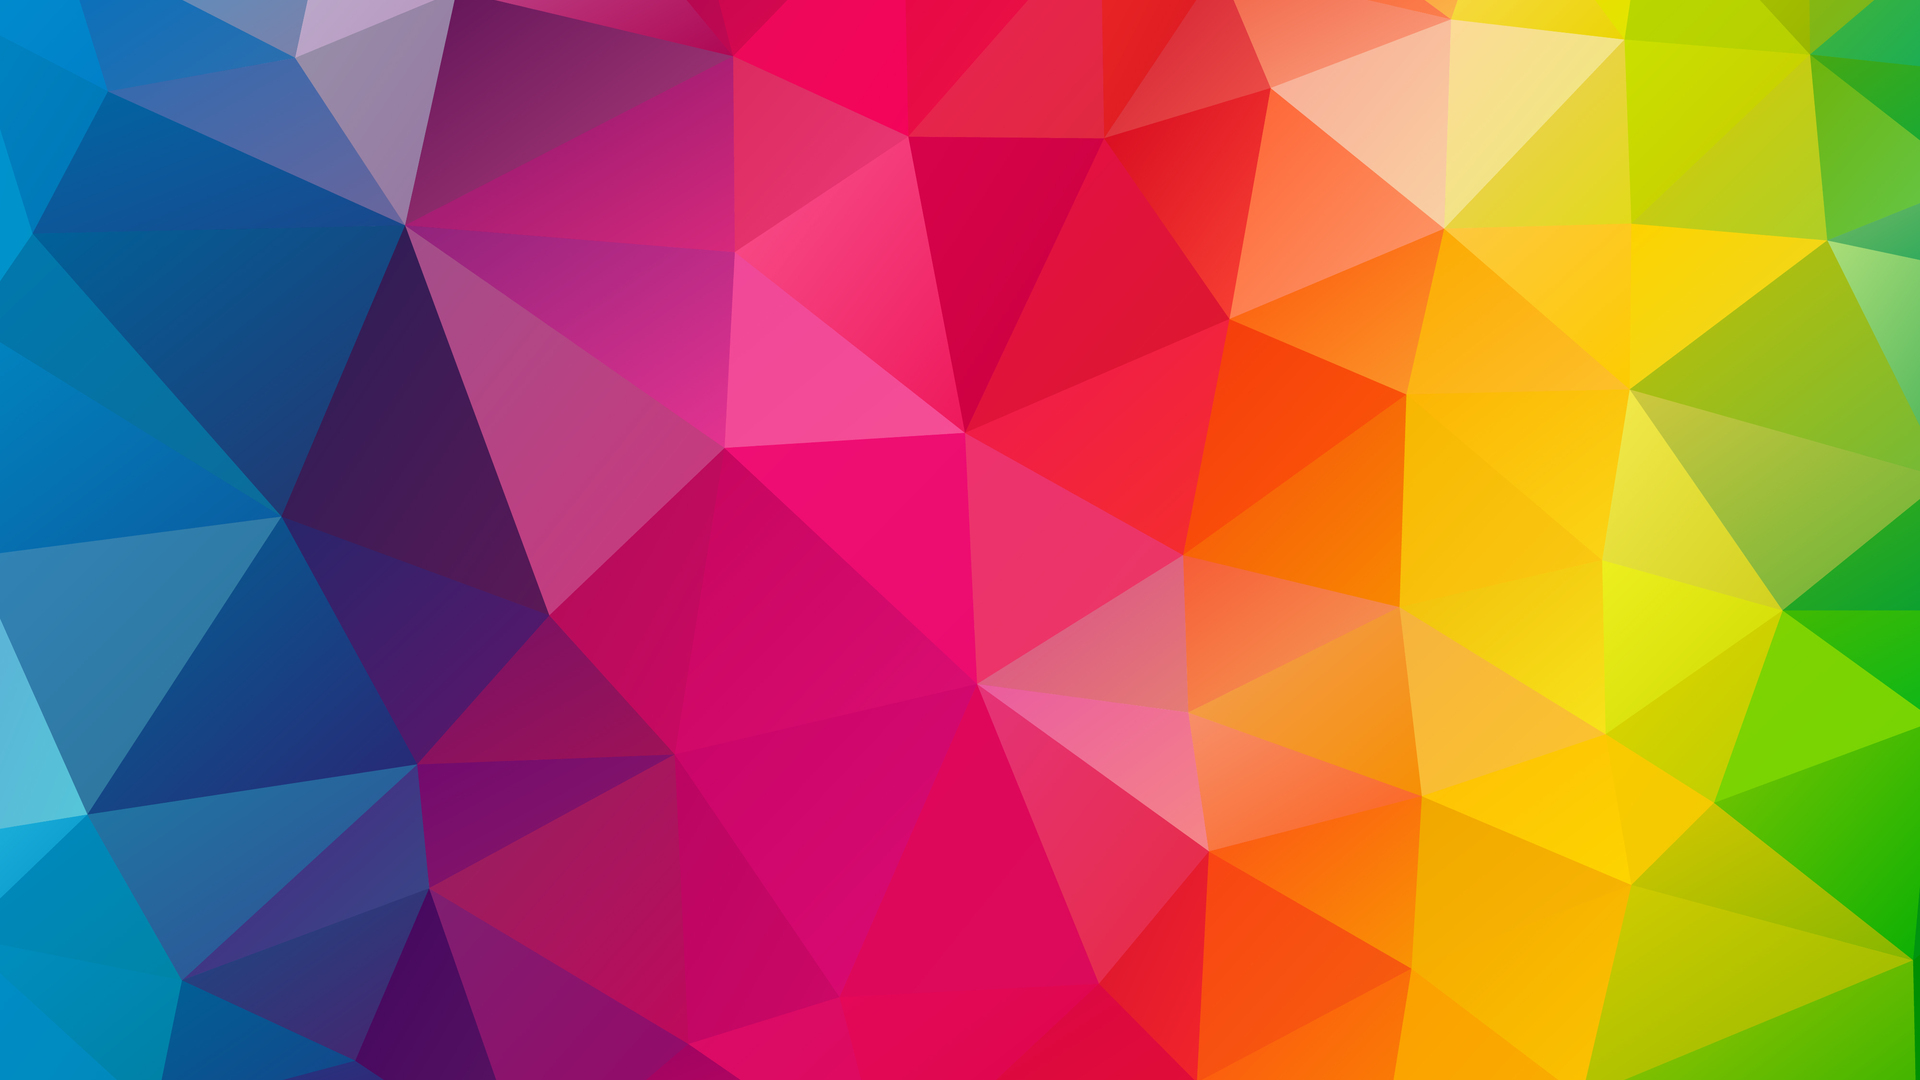 1920x1080 Triangles Colorful Background Laptop Full Hd 1080p Hd 4k Wallpapers Images Backgrounds Photos And Pictures